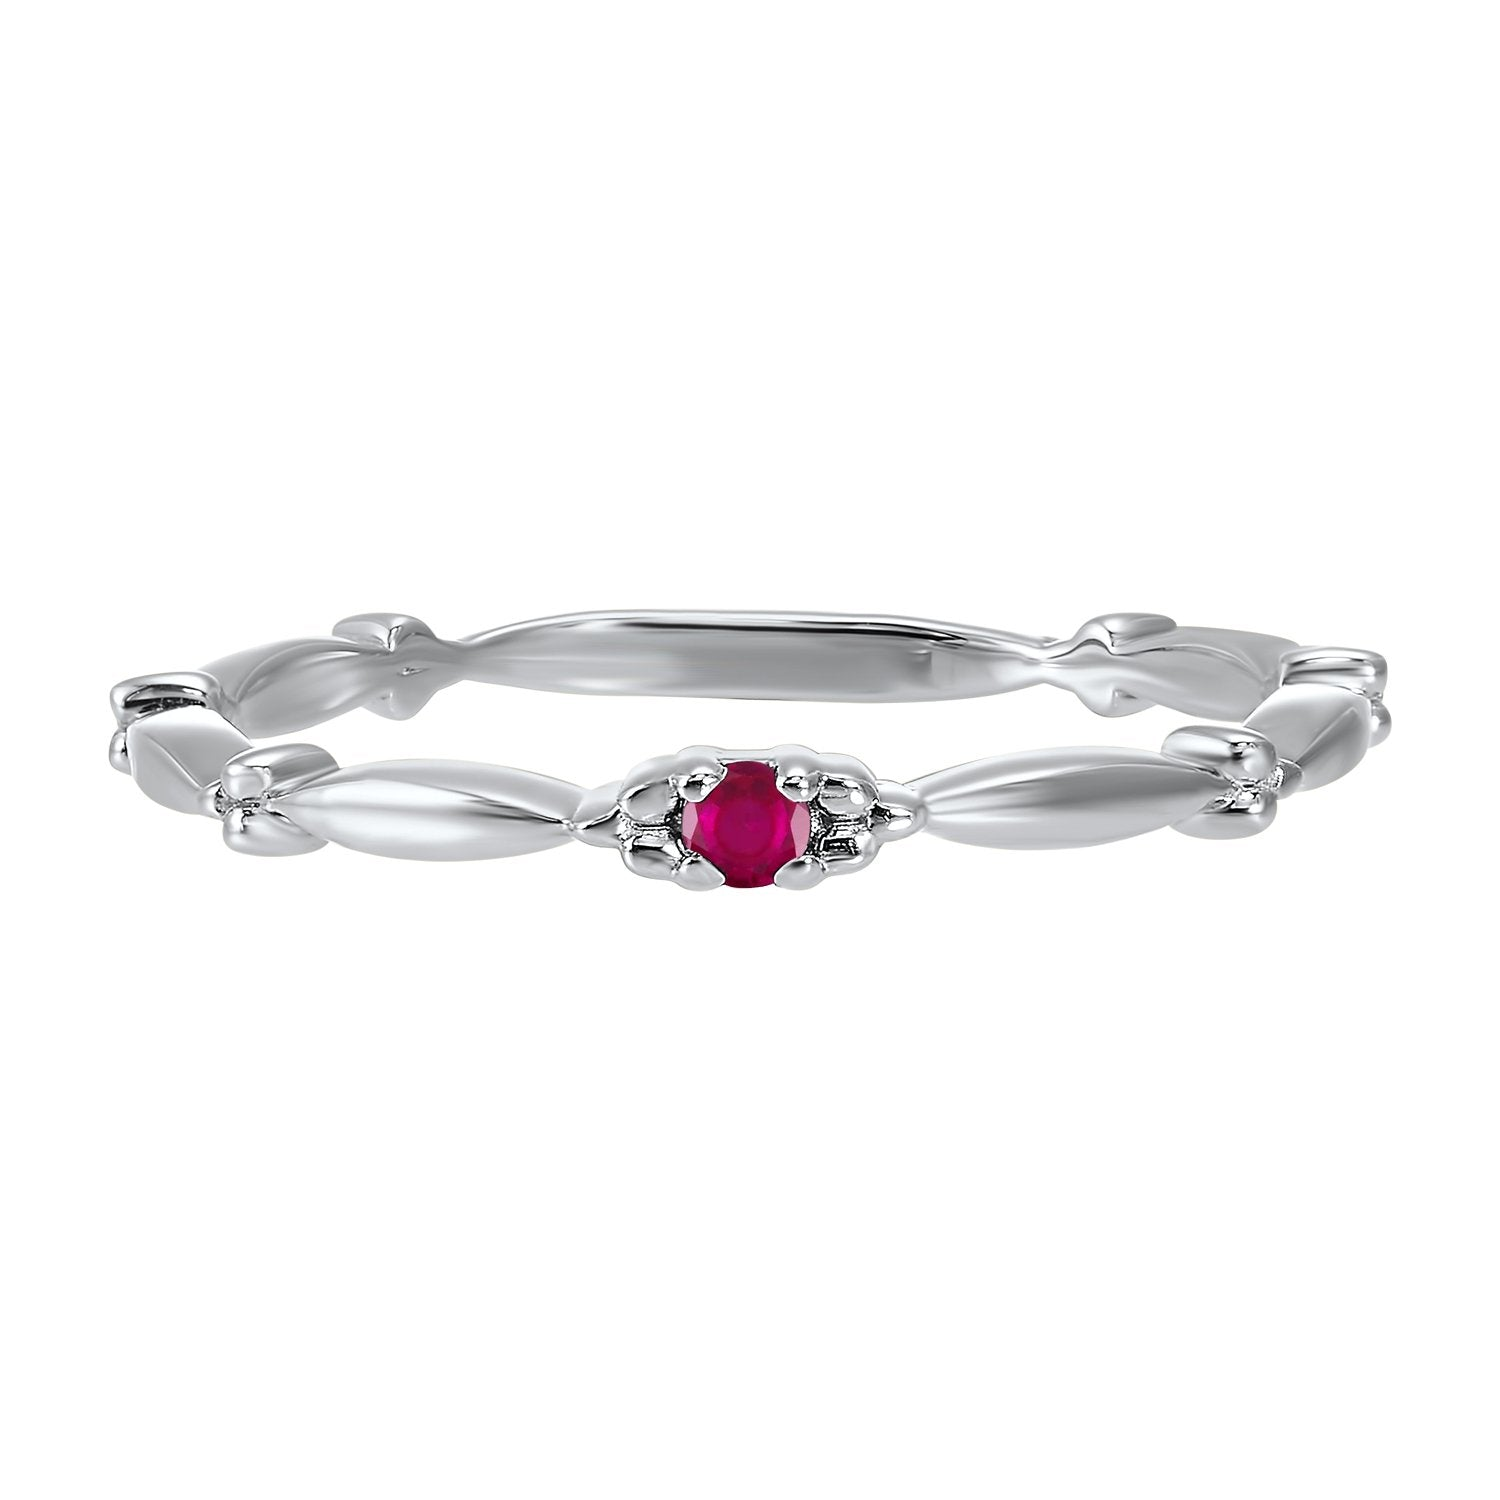 10K White Gold Stackable Prong Ruby Band